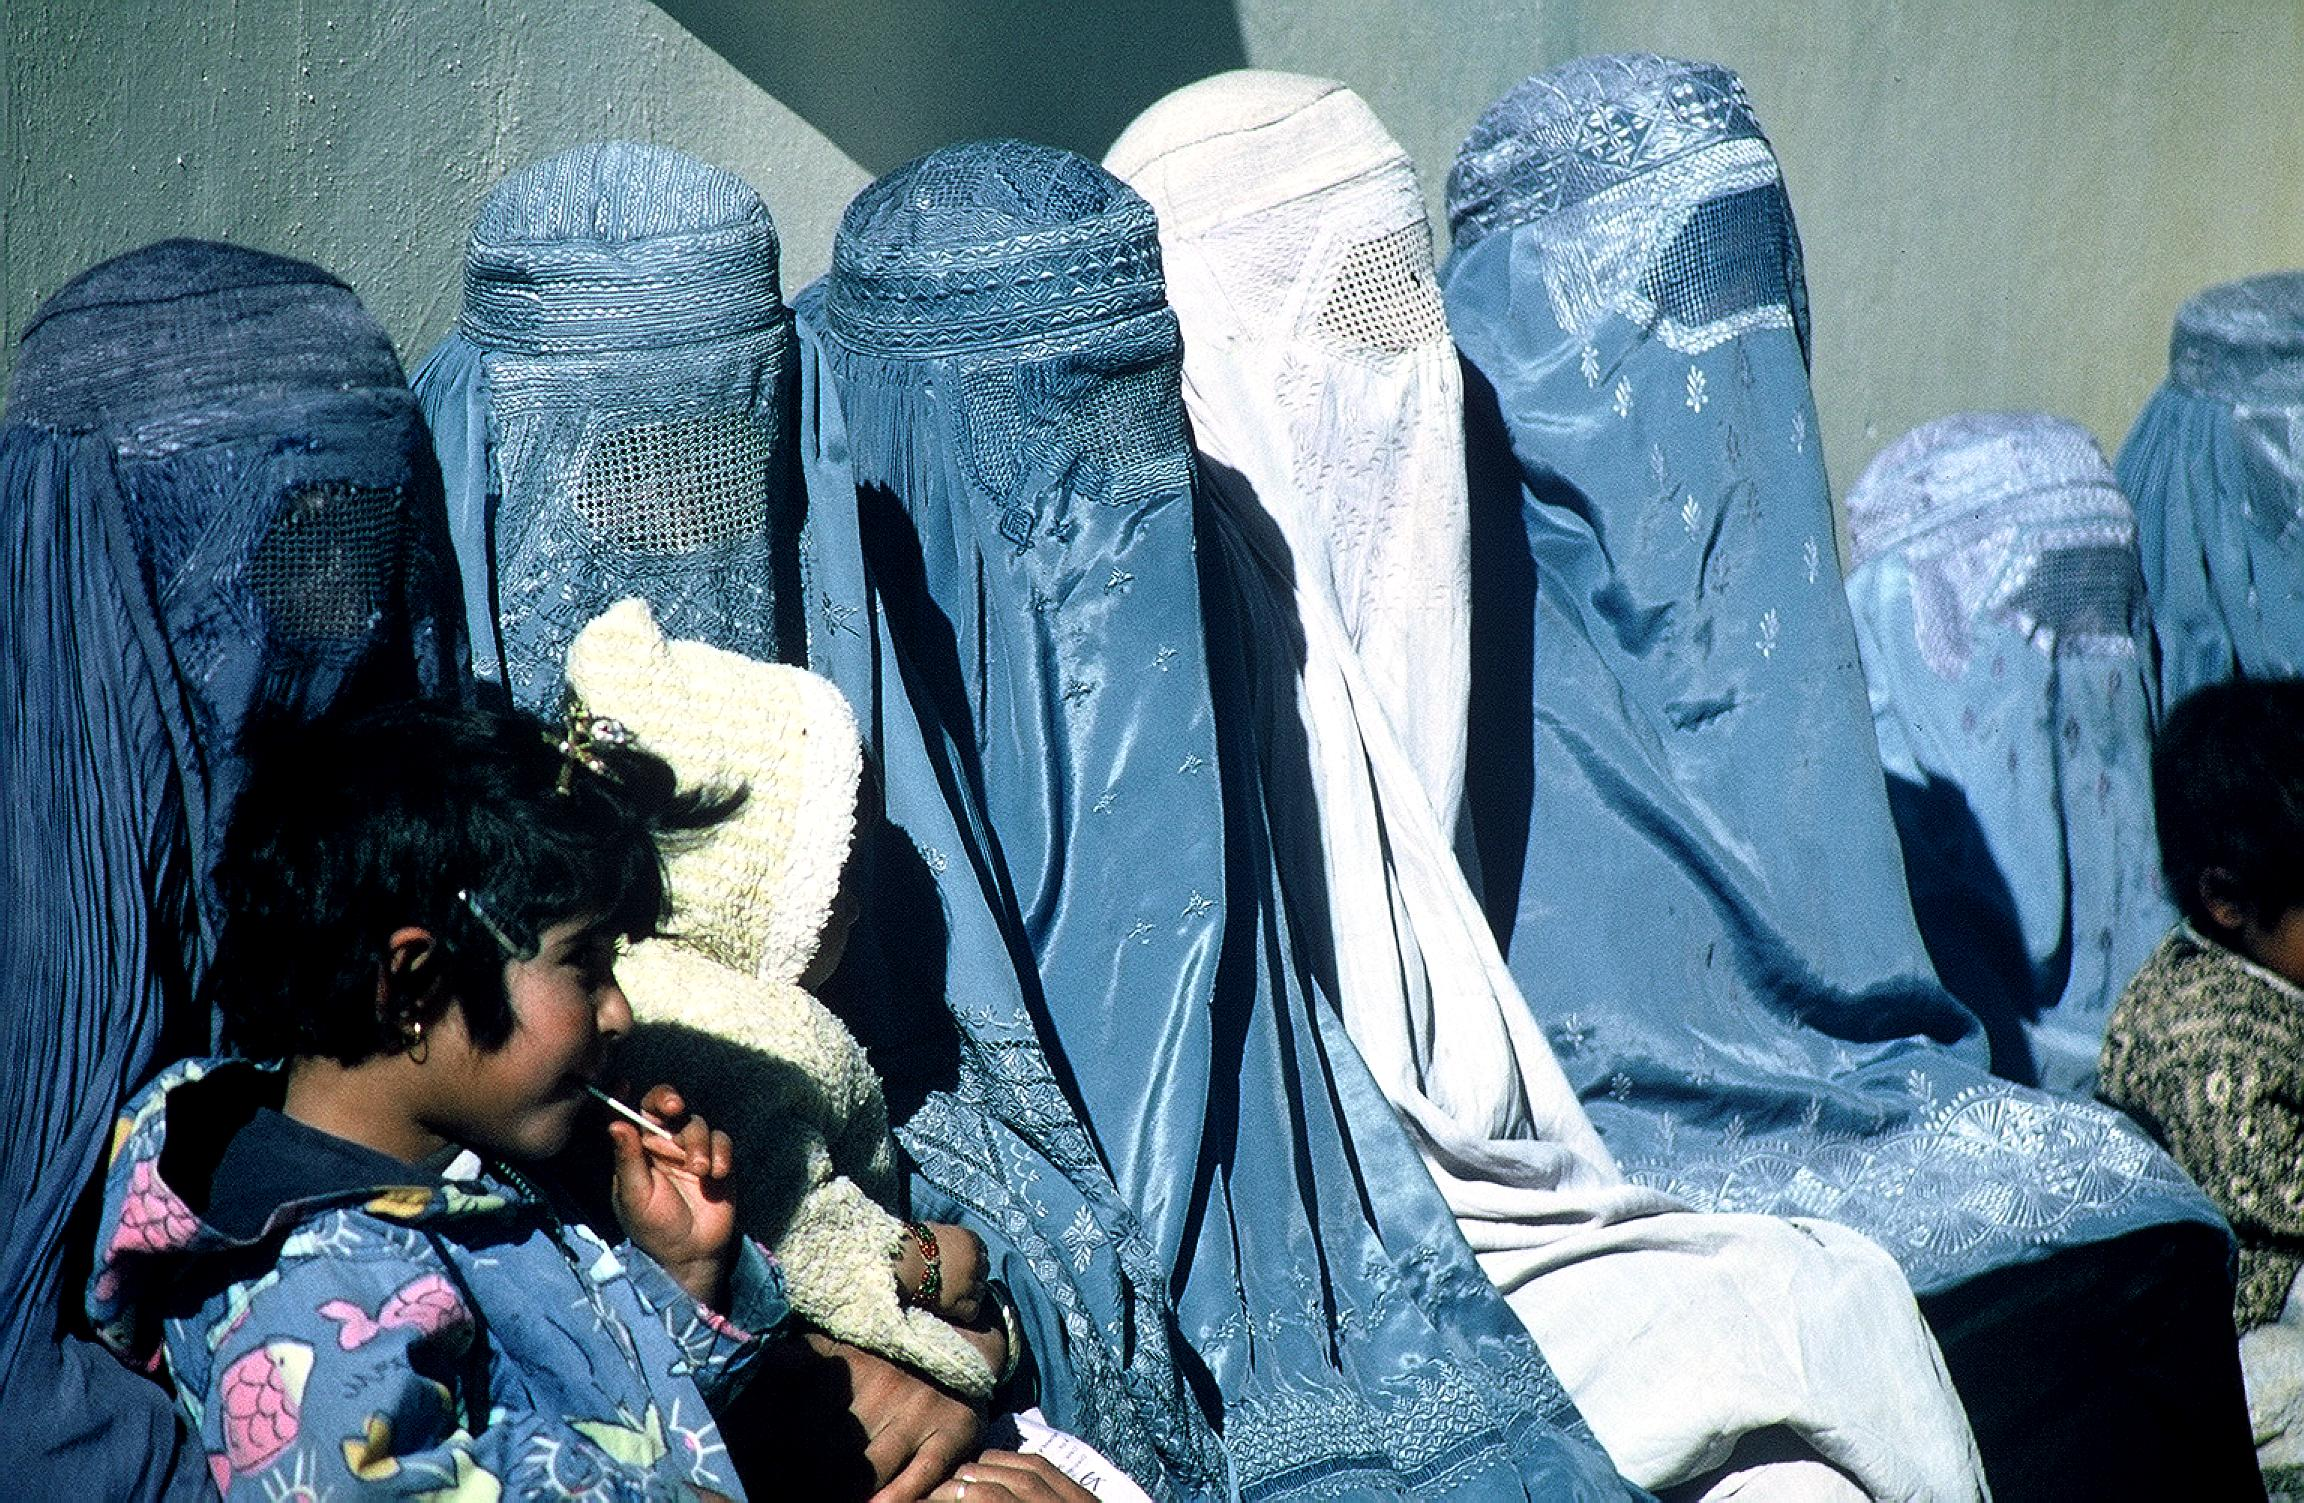 A group of Afghani women wearing burkas. Image credit: USAID, Pixnio